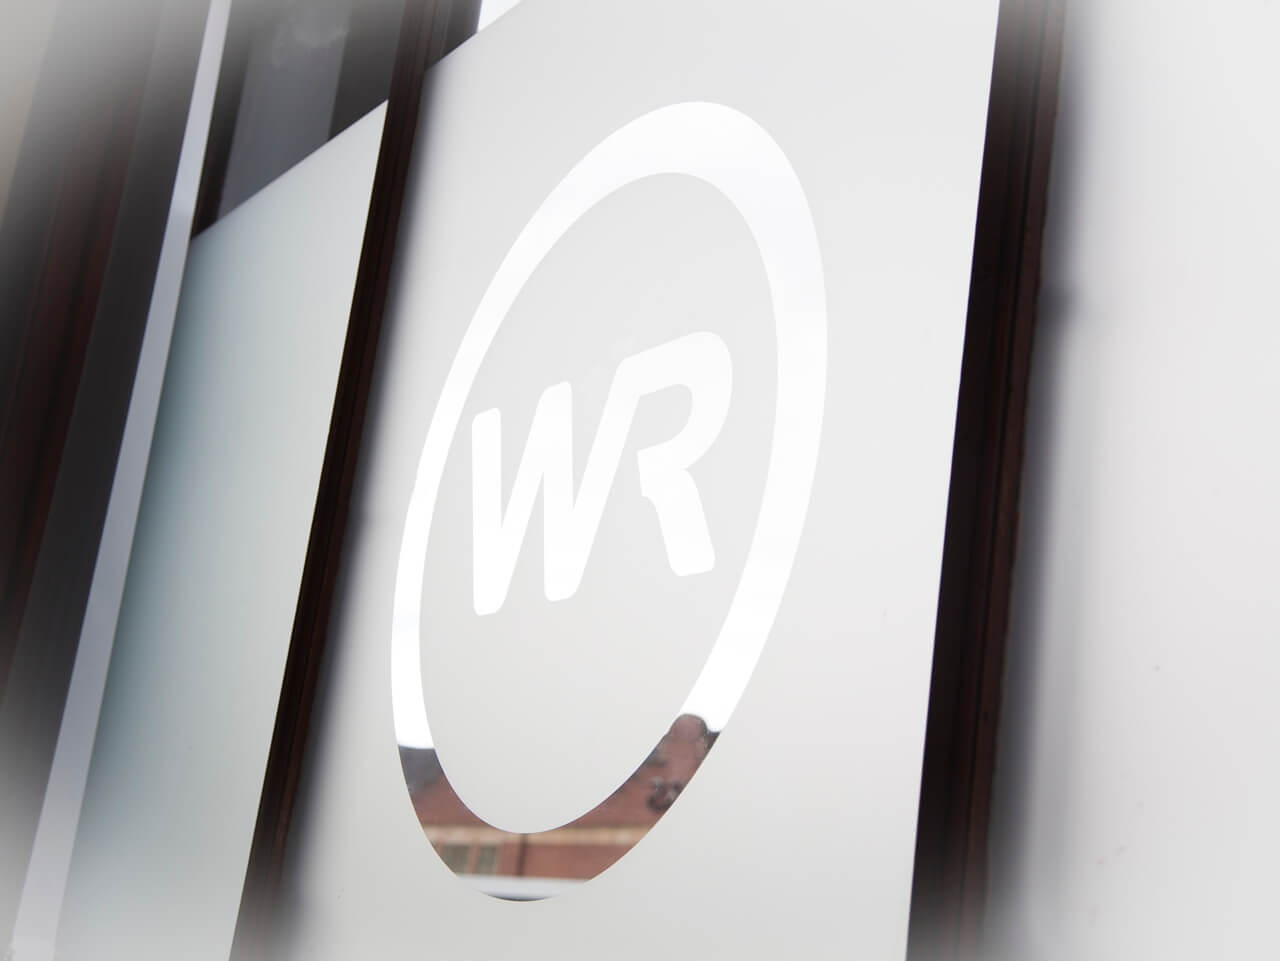 The Walton Robinson logo displayed on a window